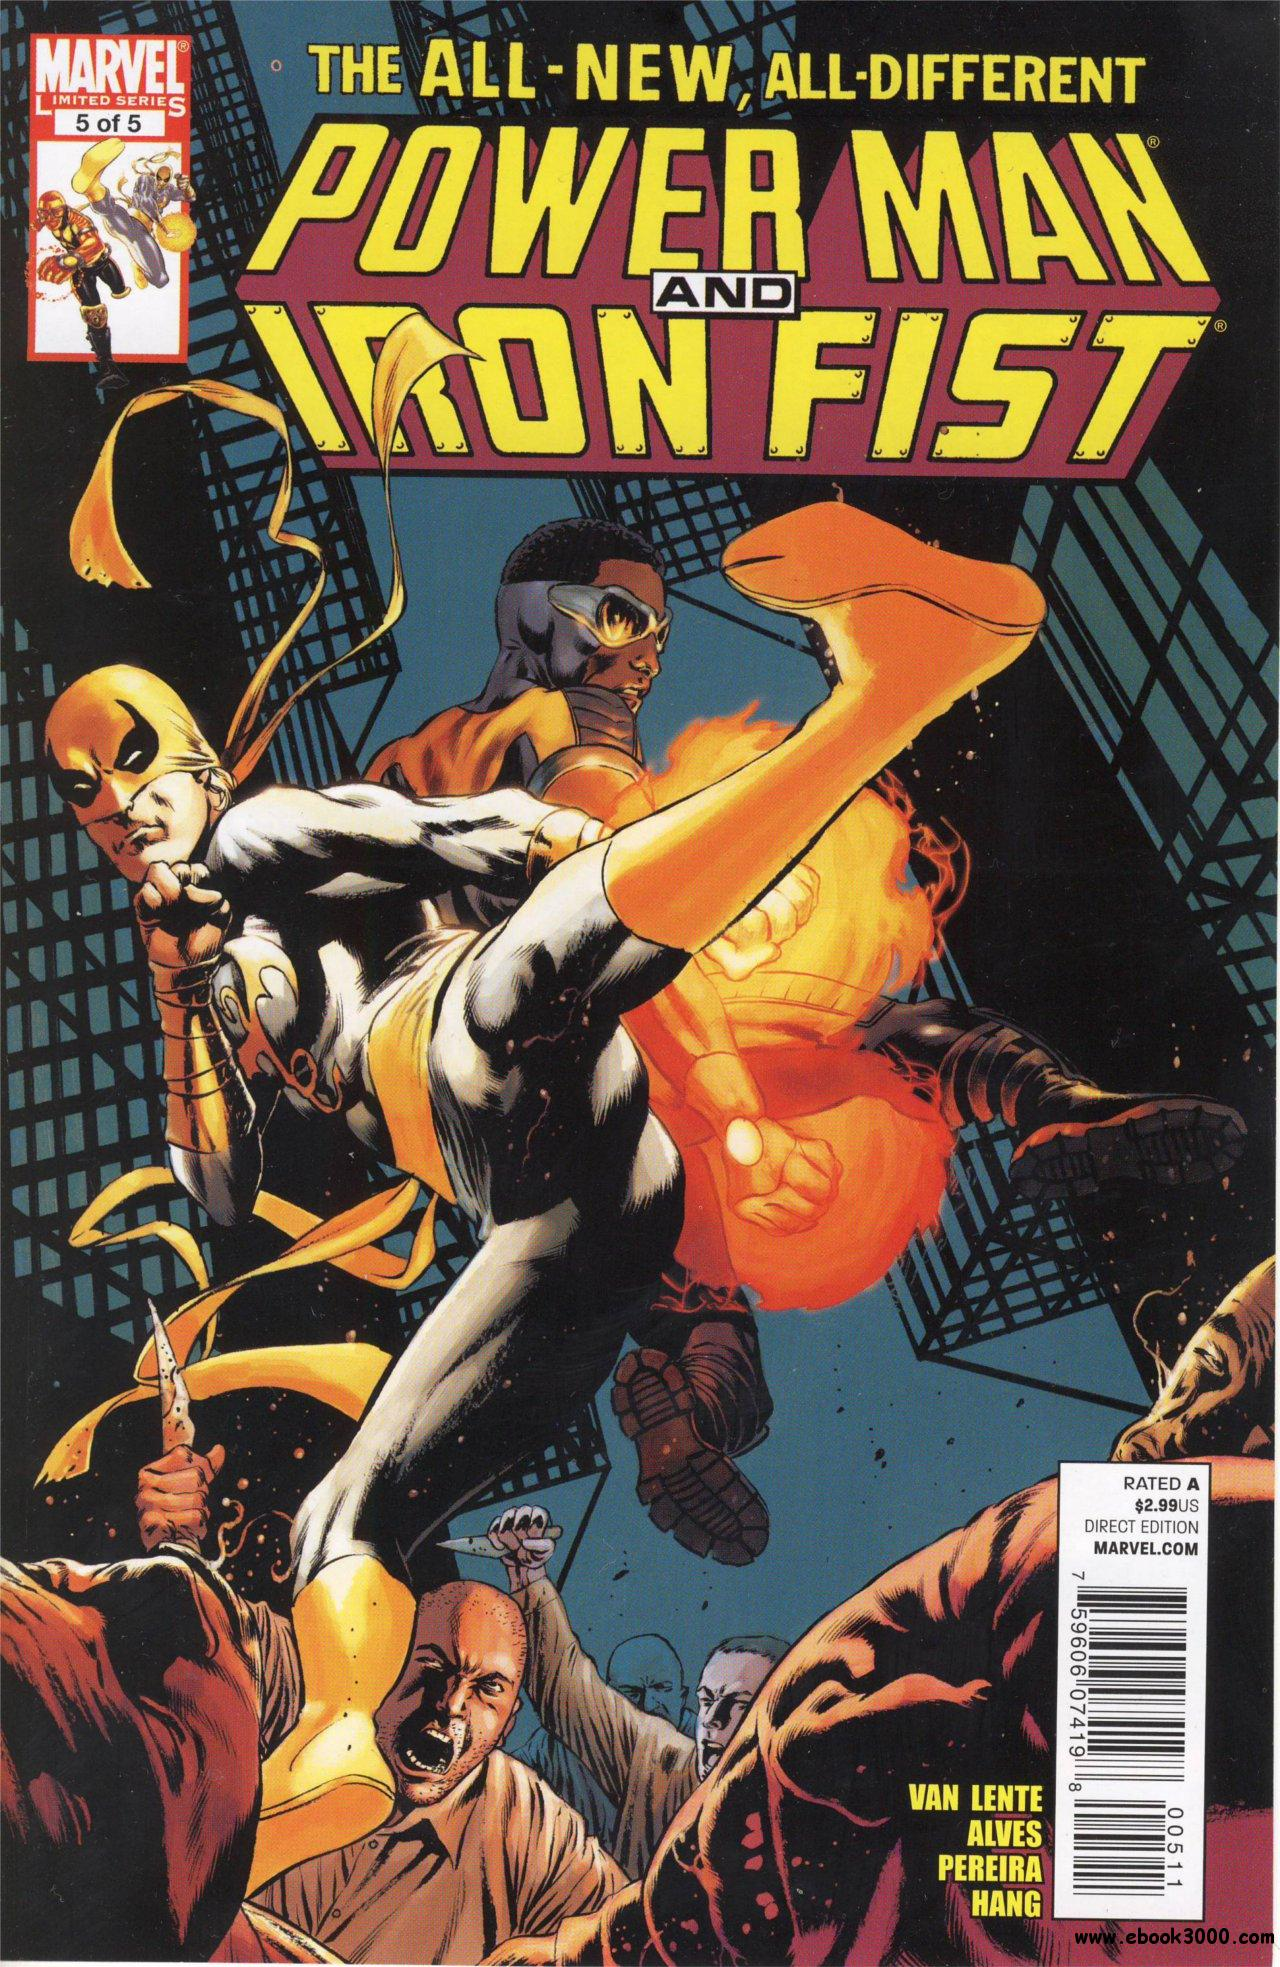 Power Man and Iron Fist #5 (of 05) (2011) free download